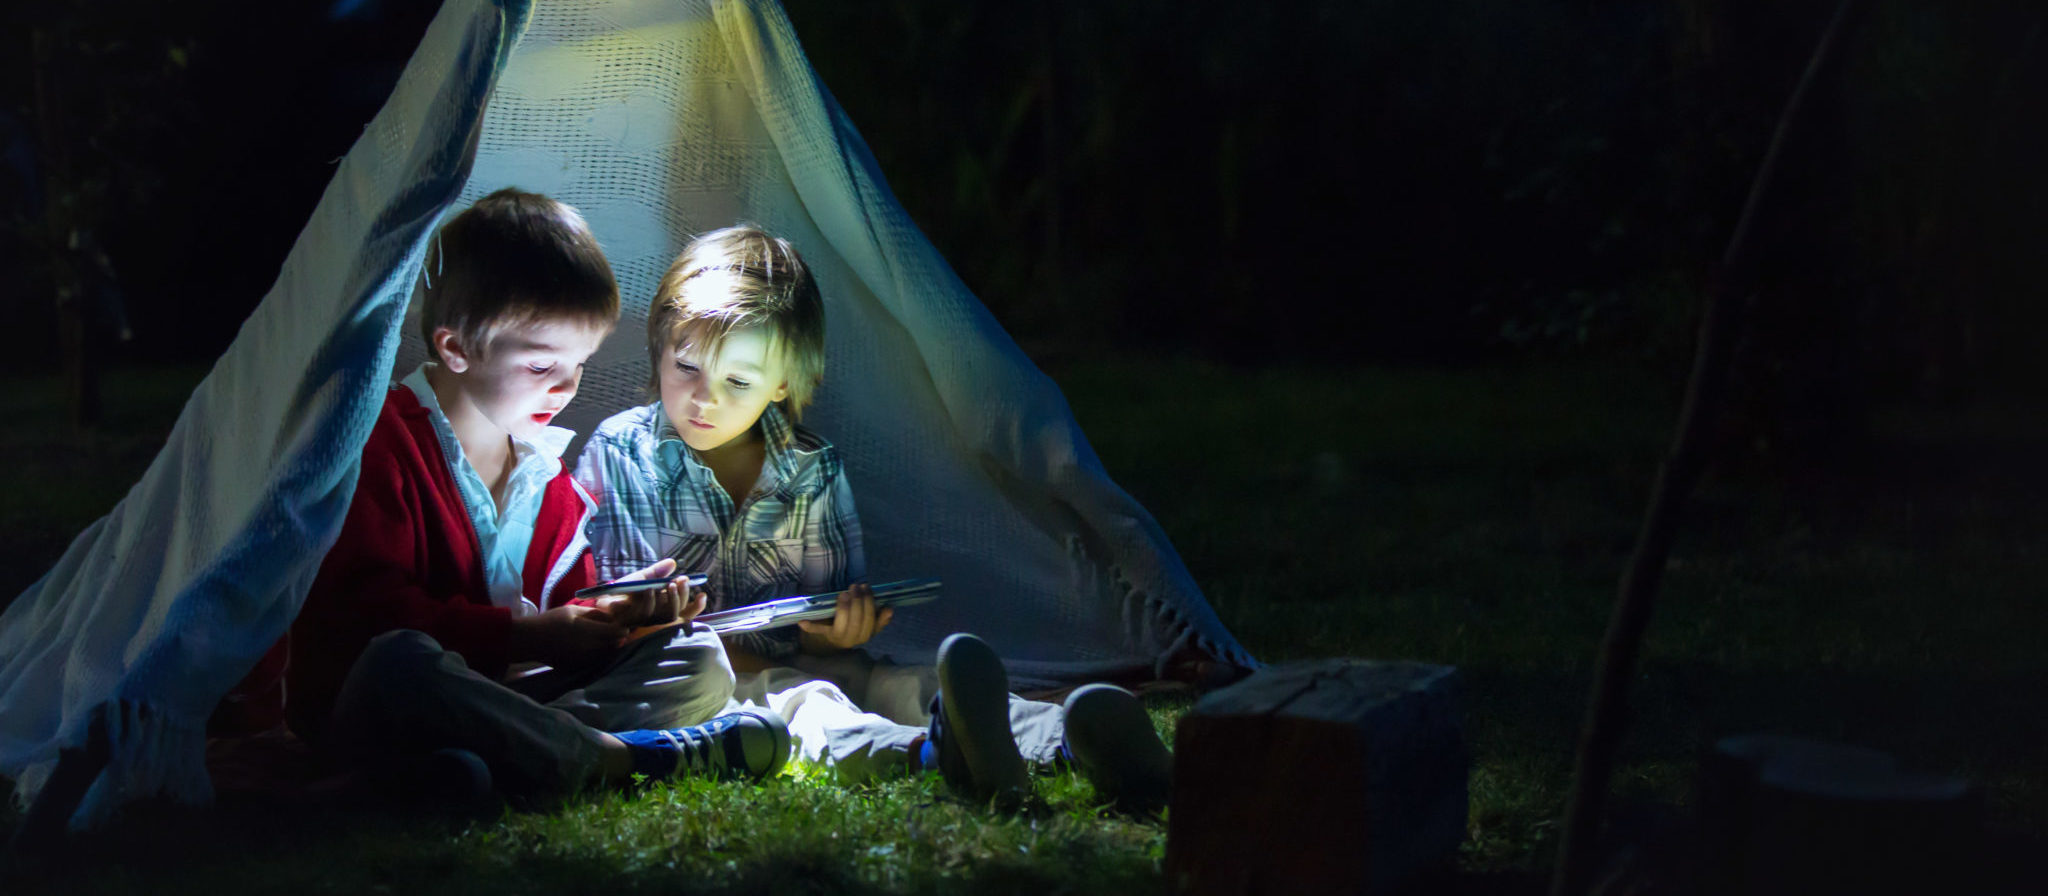 Telling stories, scary or otherwise, is a great way for kids to pass the time on a camping trip. Be ready, though... You might need to get them started!